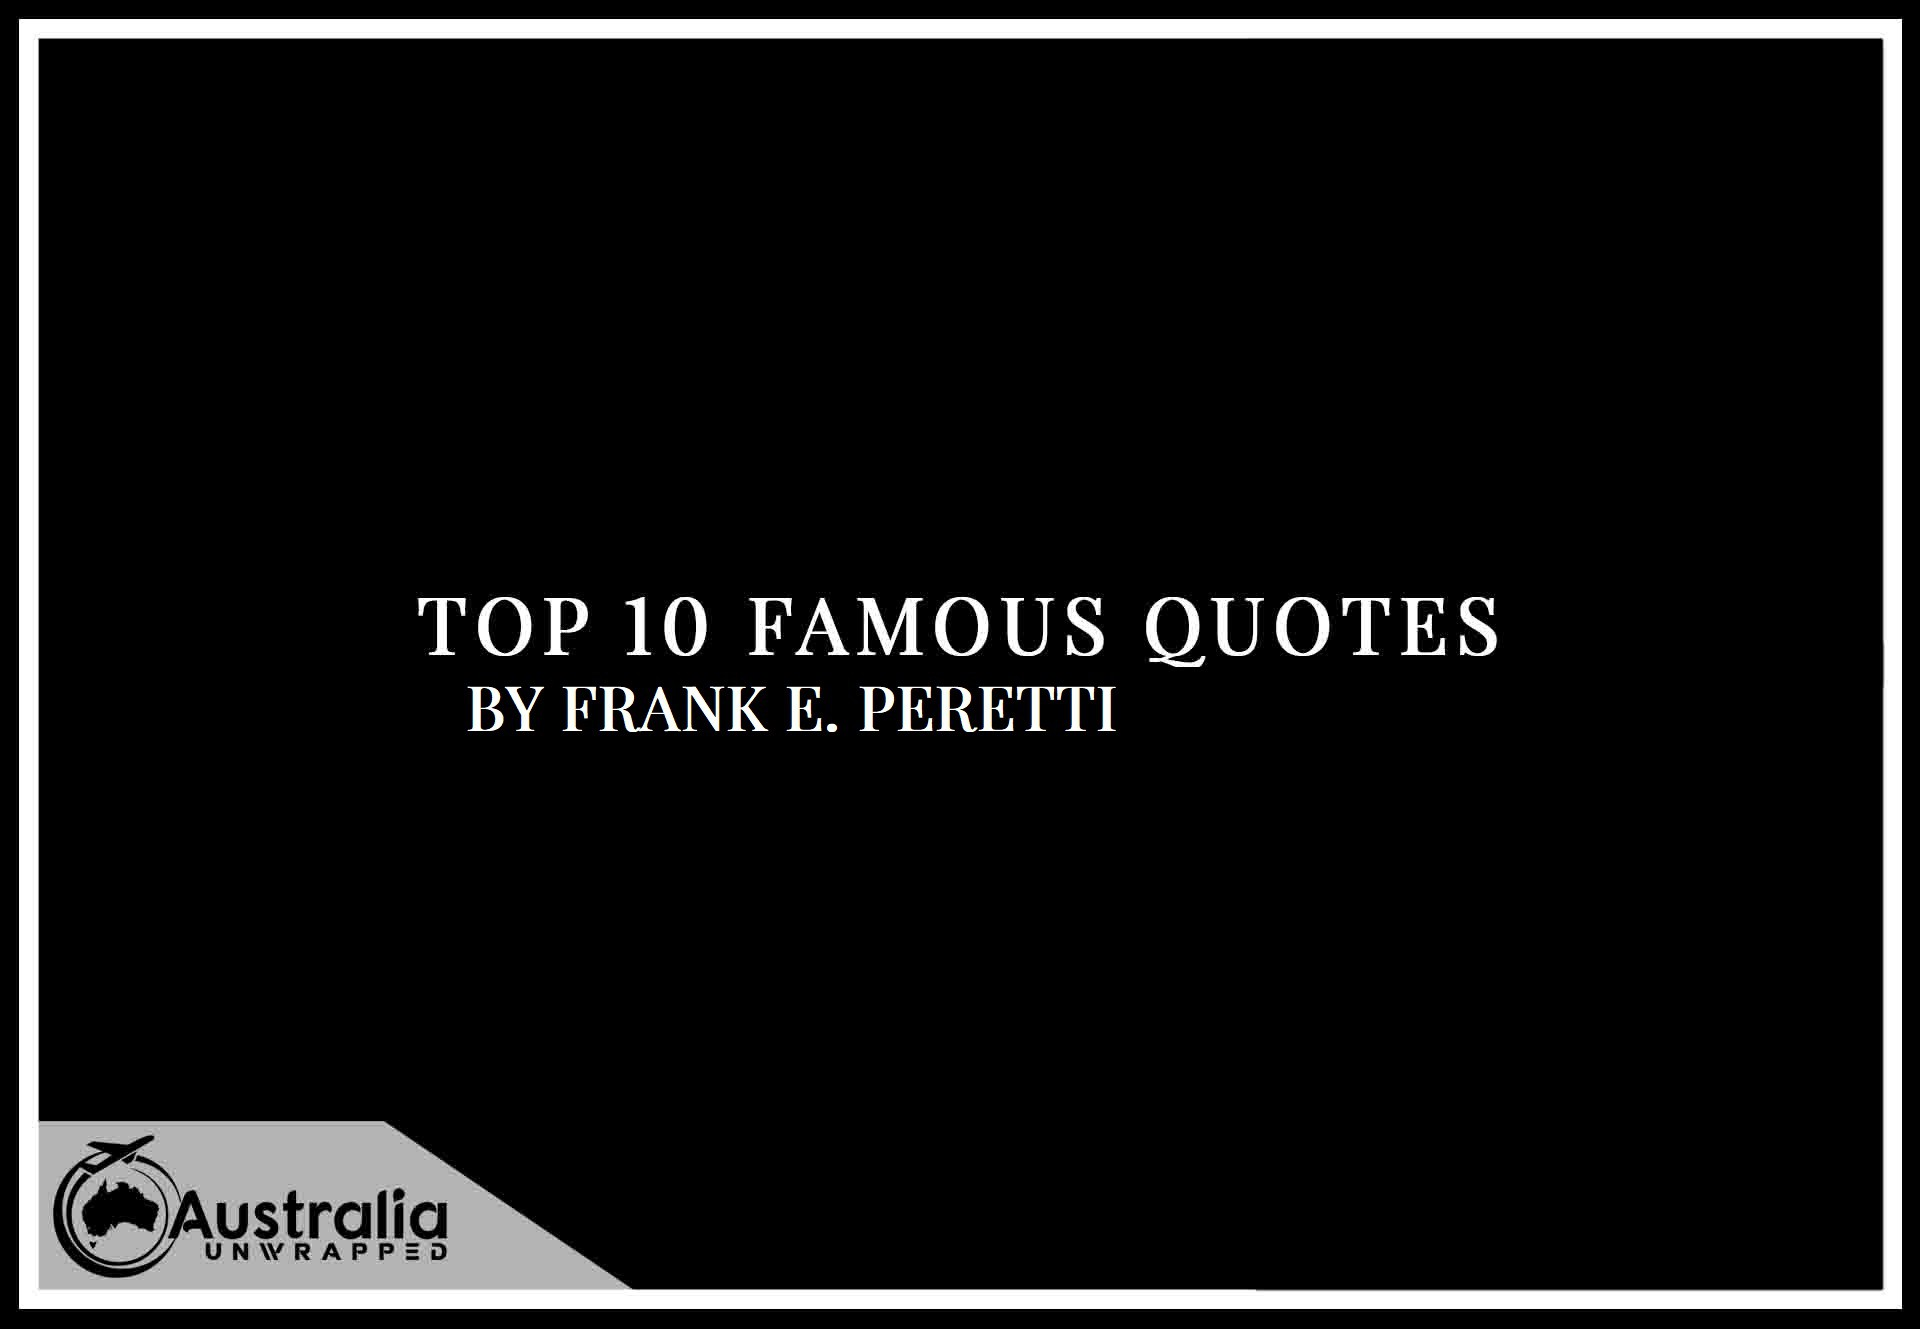 Top 10 Famous Quotes by Author Frank Peretti